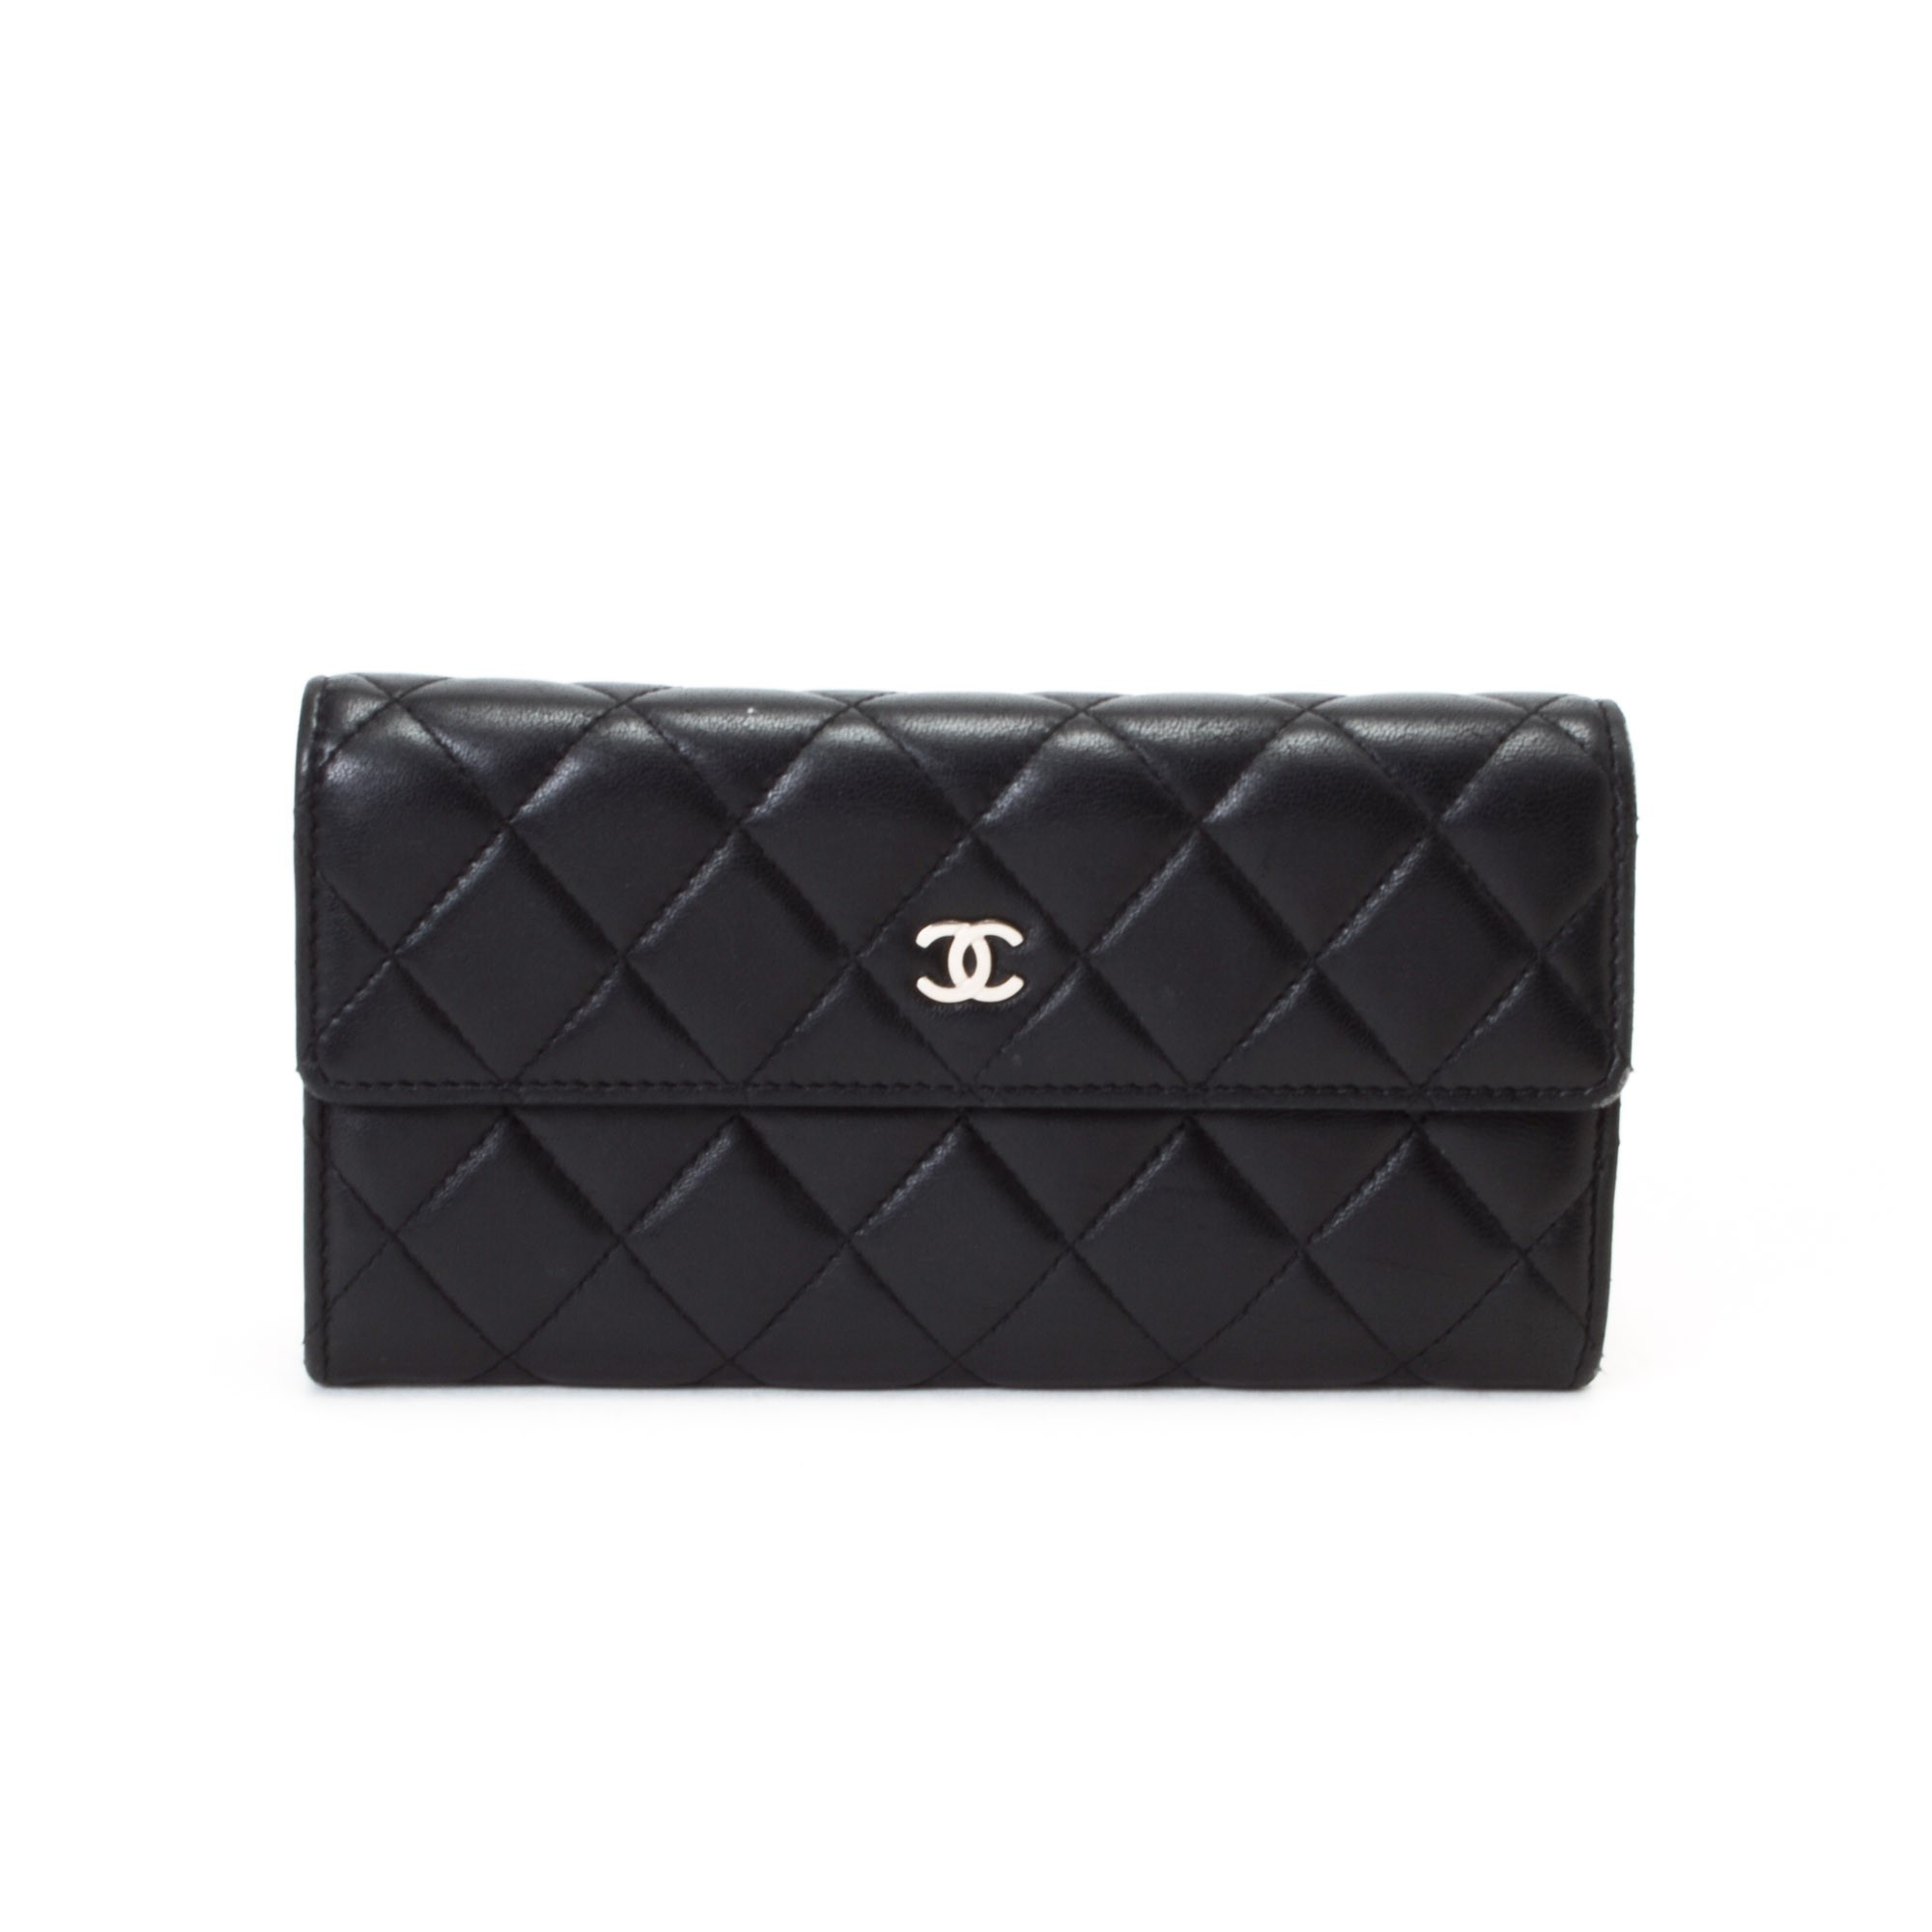 7b5b2c0f3745 Chanel Mens Long Wallet | Stanford Center for Opportunity Policy in ...